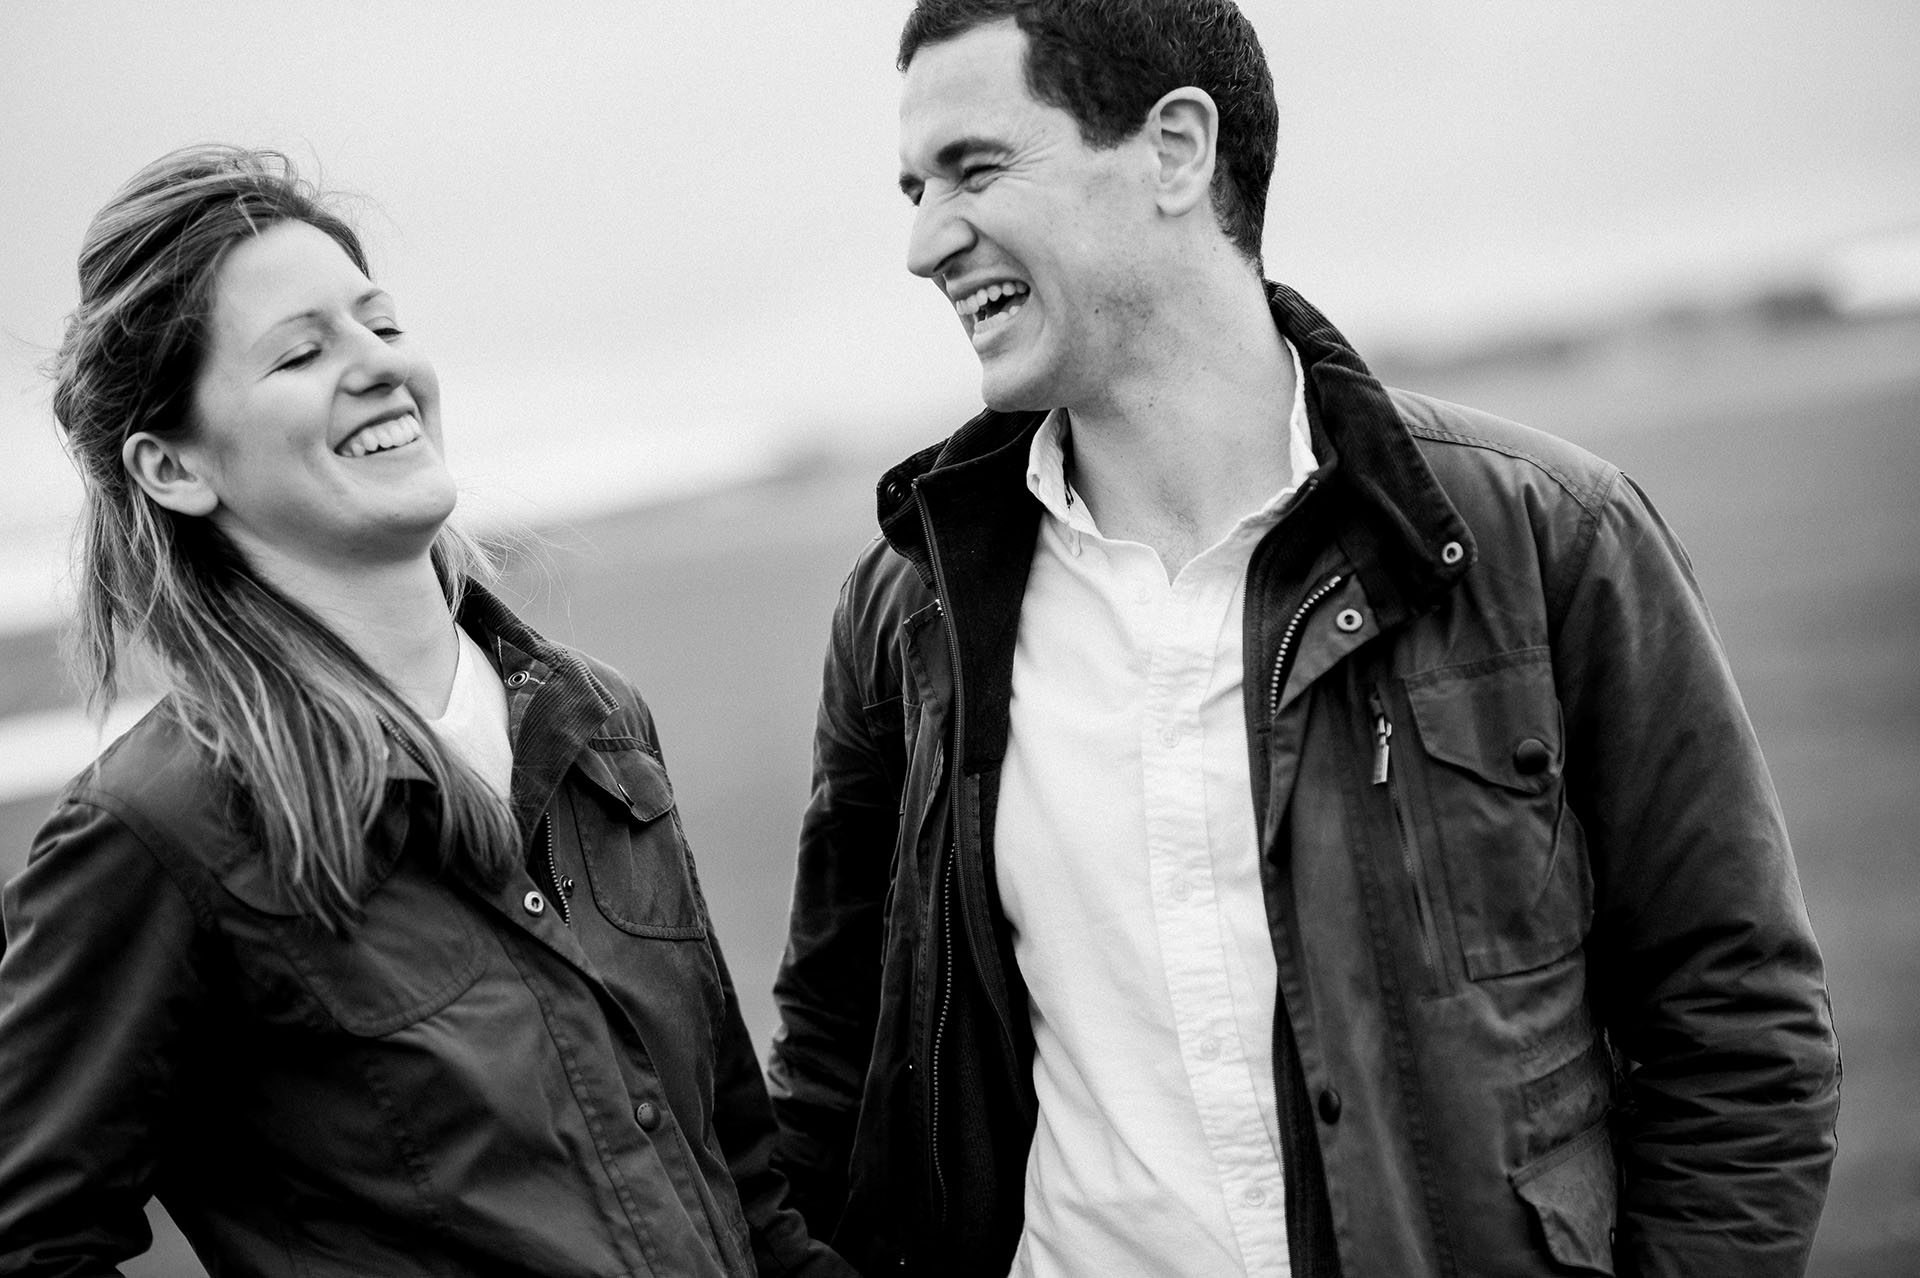 Dunkeswell Airfield Engagement Photographs_15